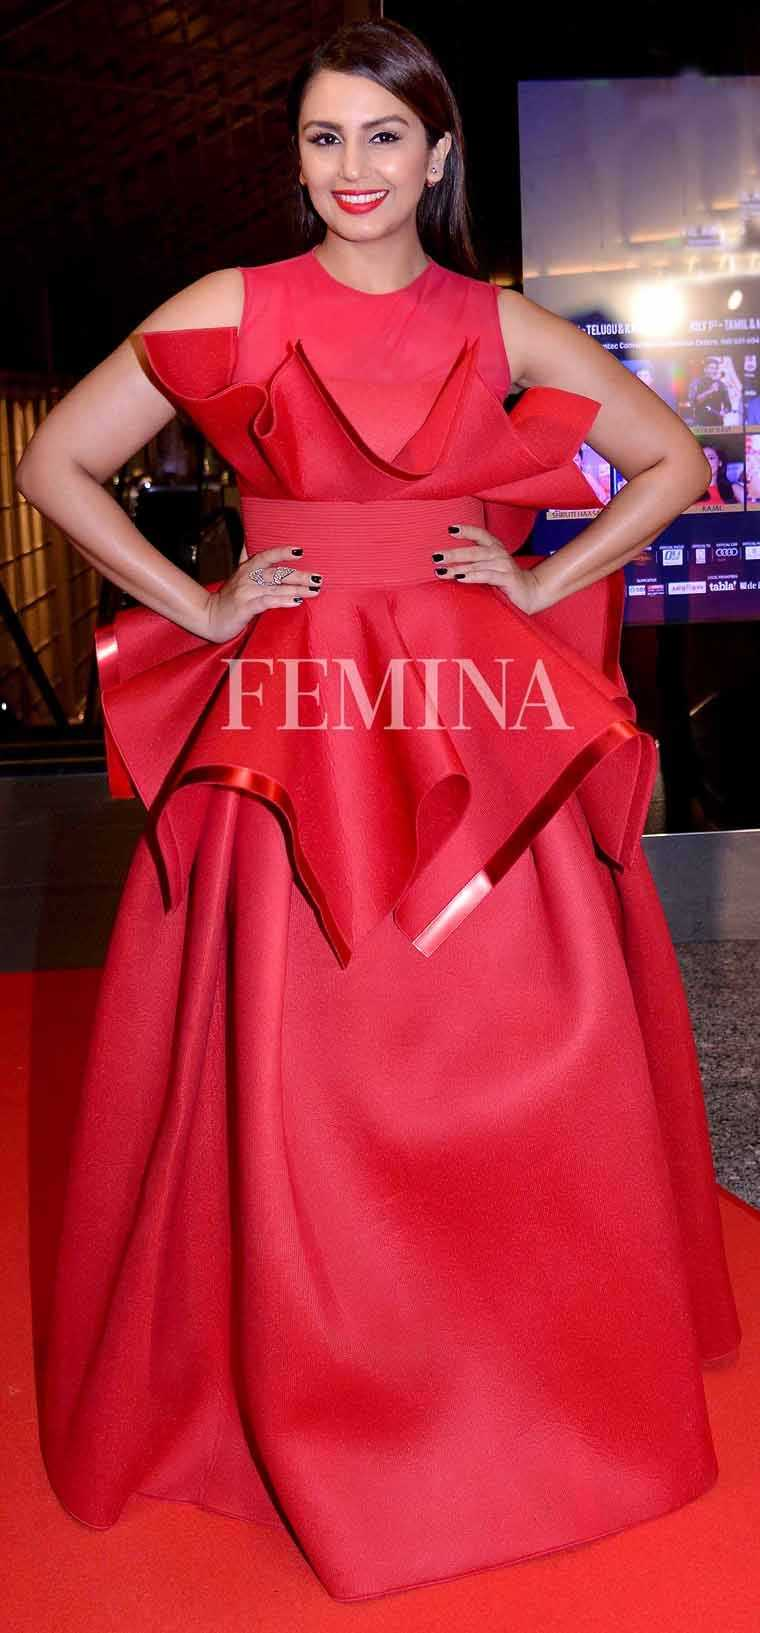 Huma stepped out for an event in a voluminous Amit Aggarwal gown. She paired her red hot number with minimal accessories and a sleek hairdo.